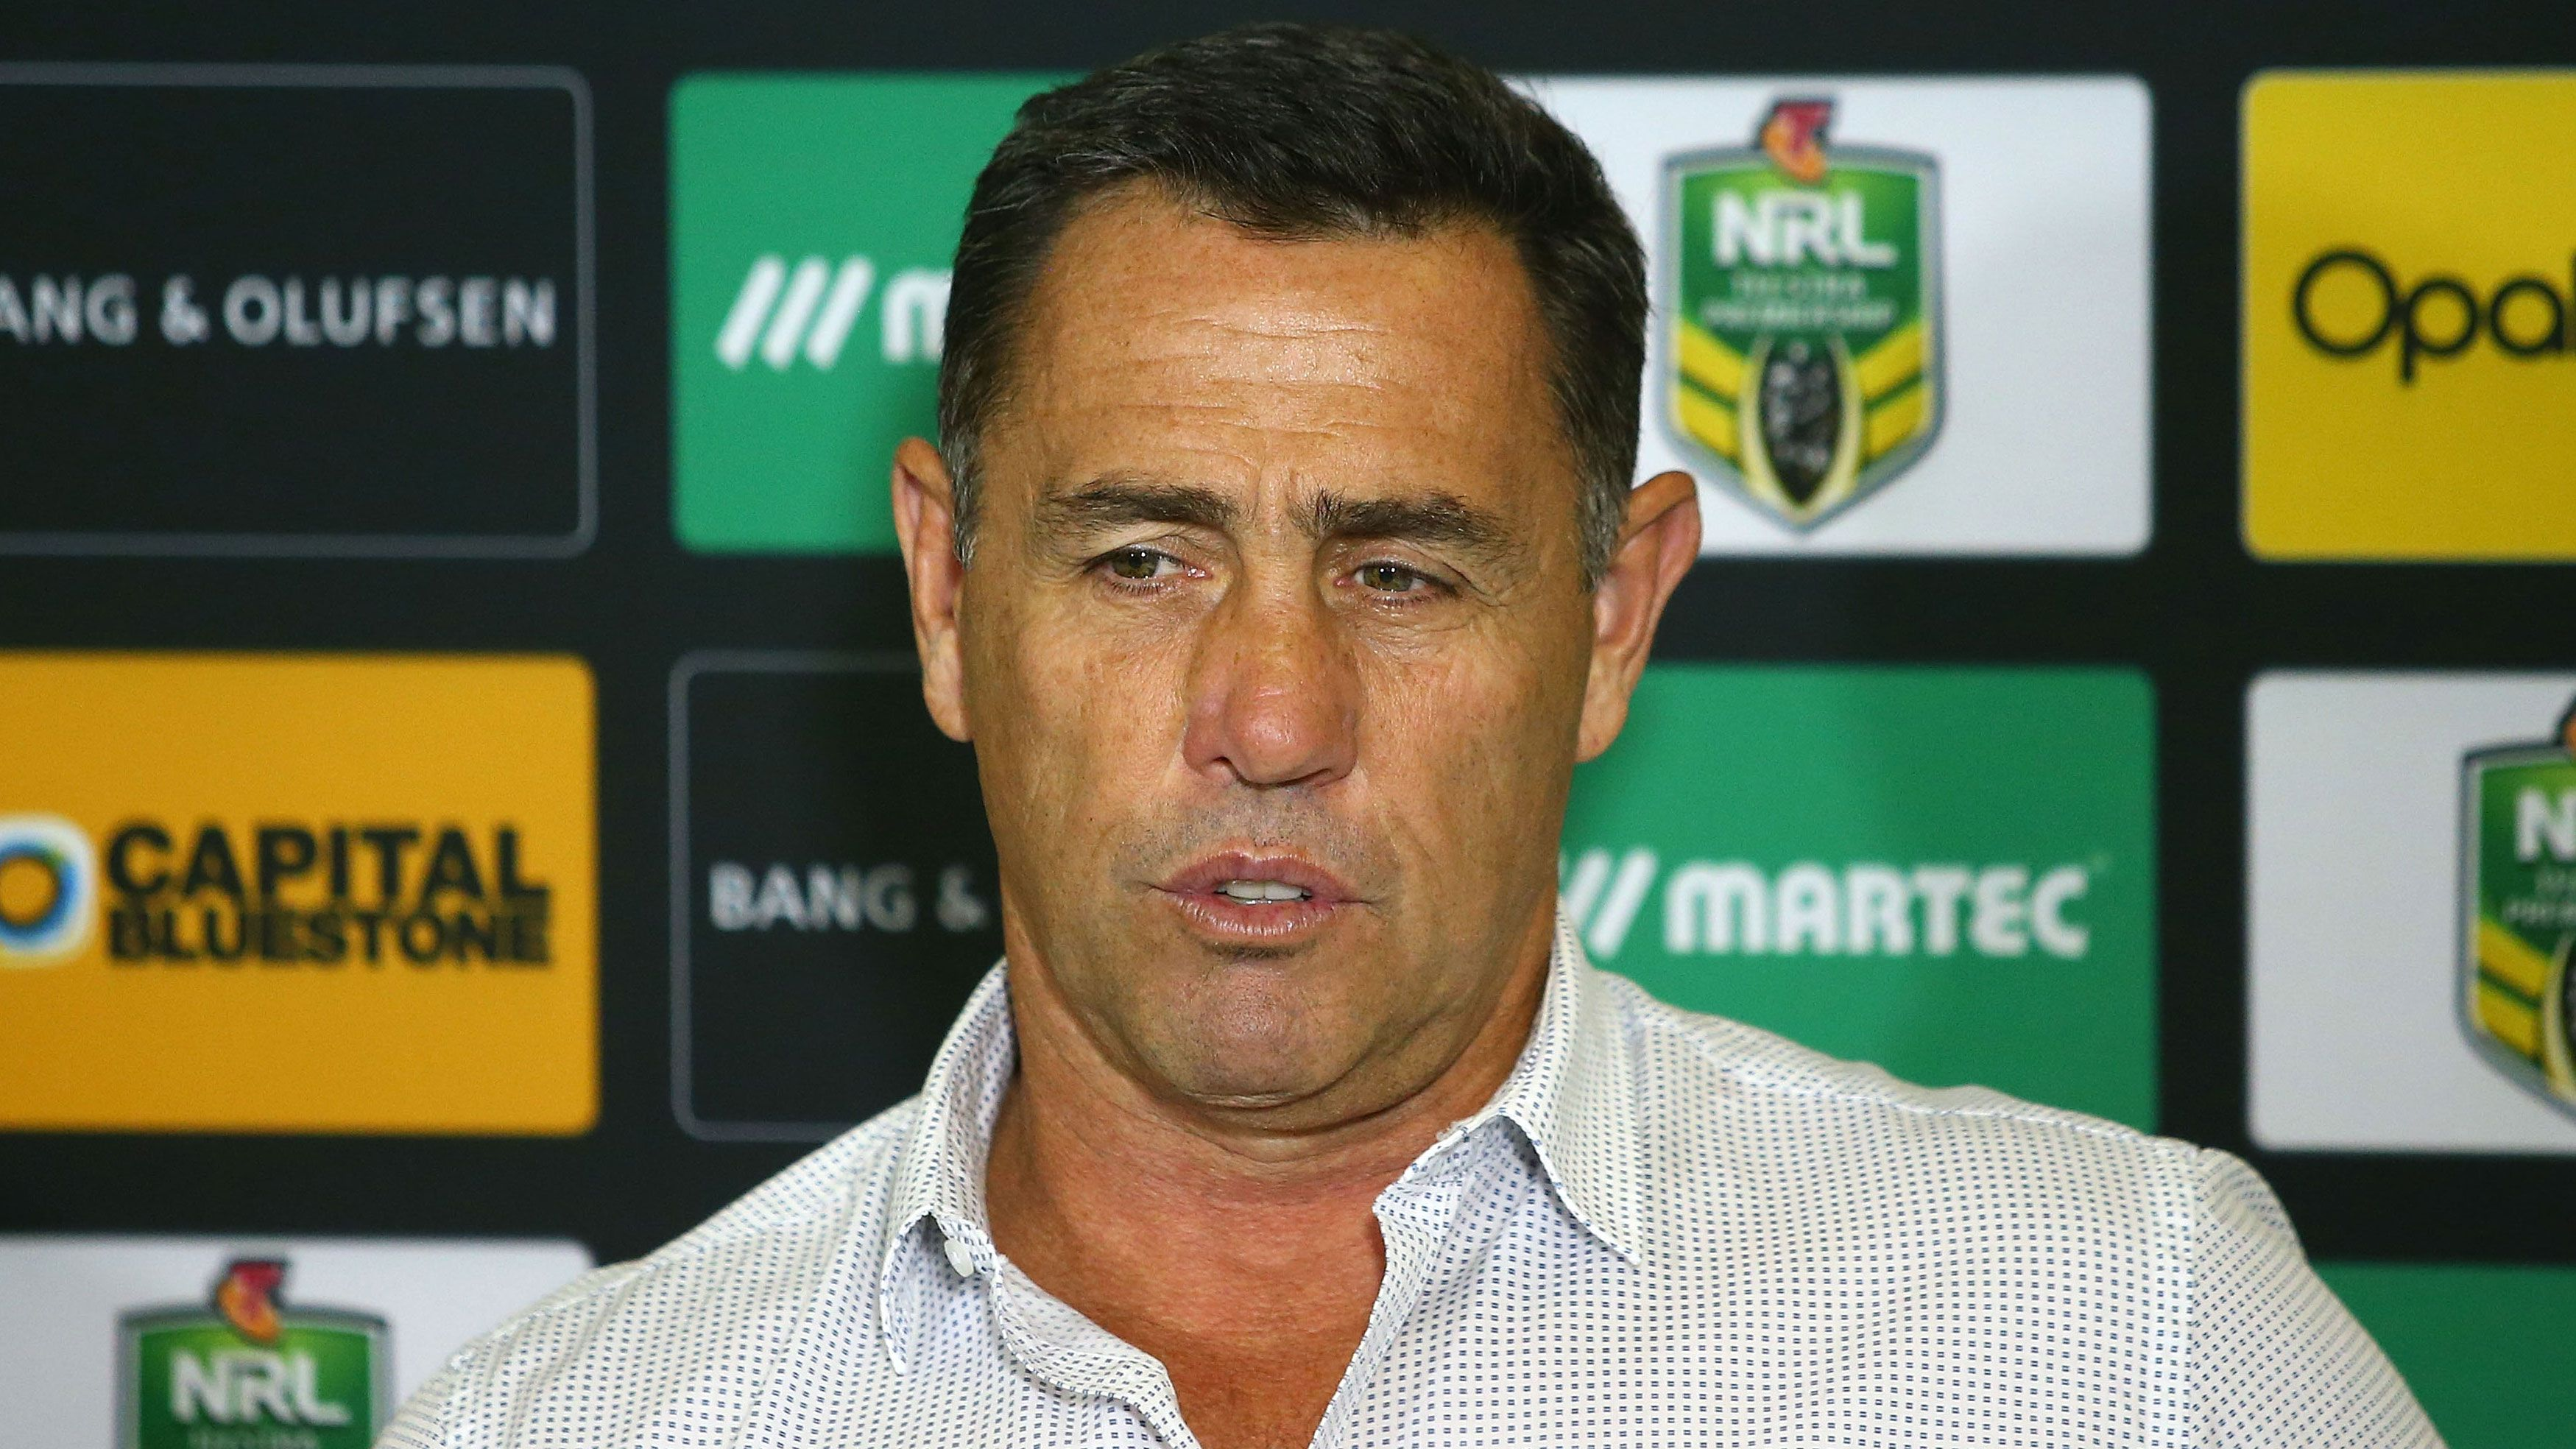 Banned former Sharks coach Shane Flanagan won't be cleared by NRL in 2020